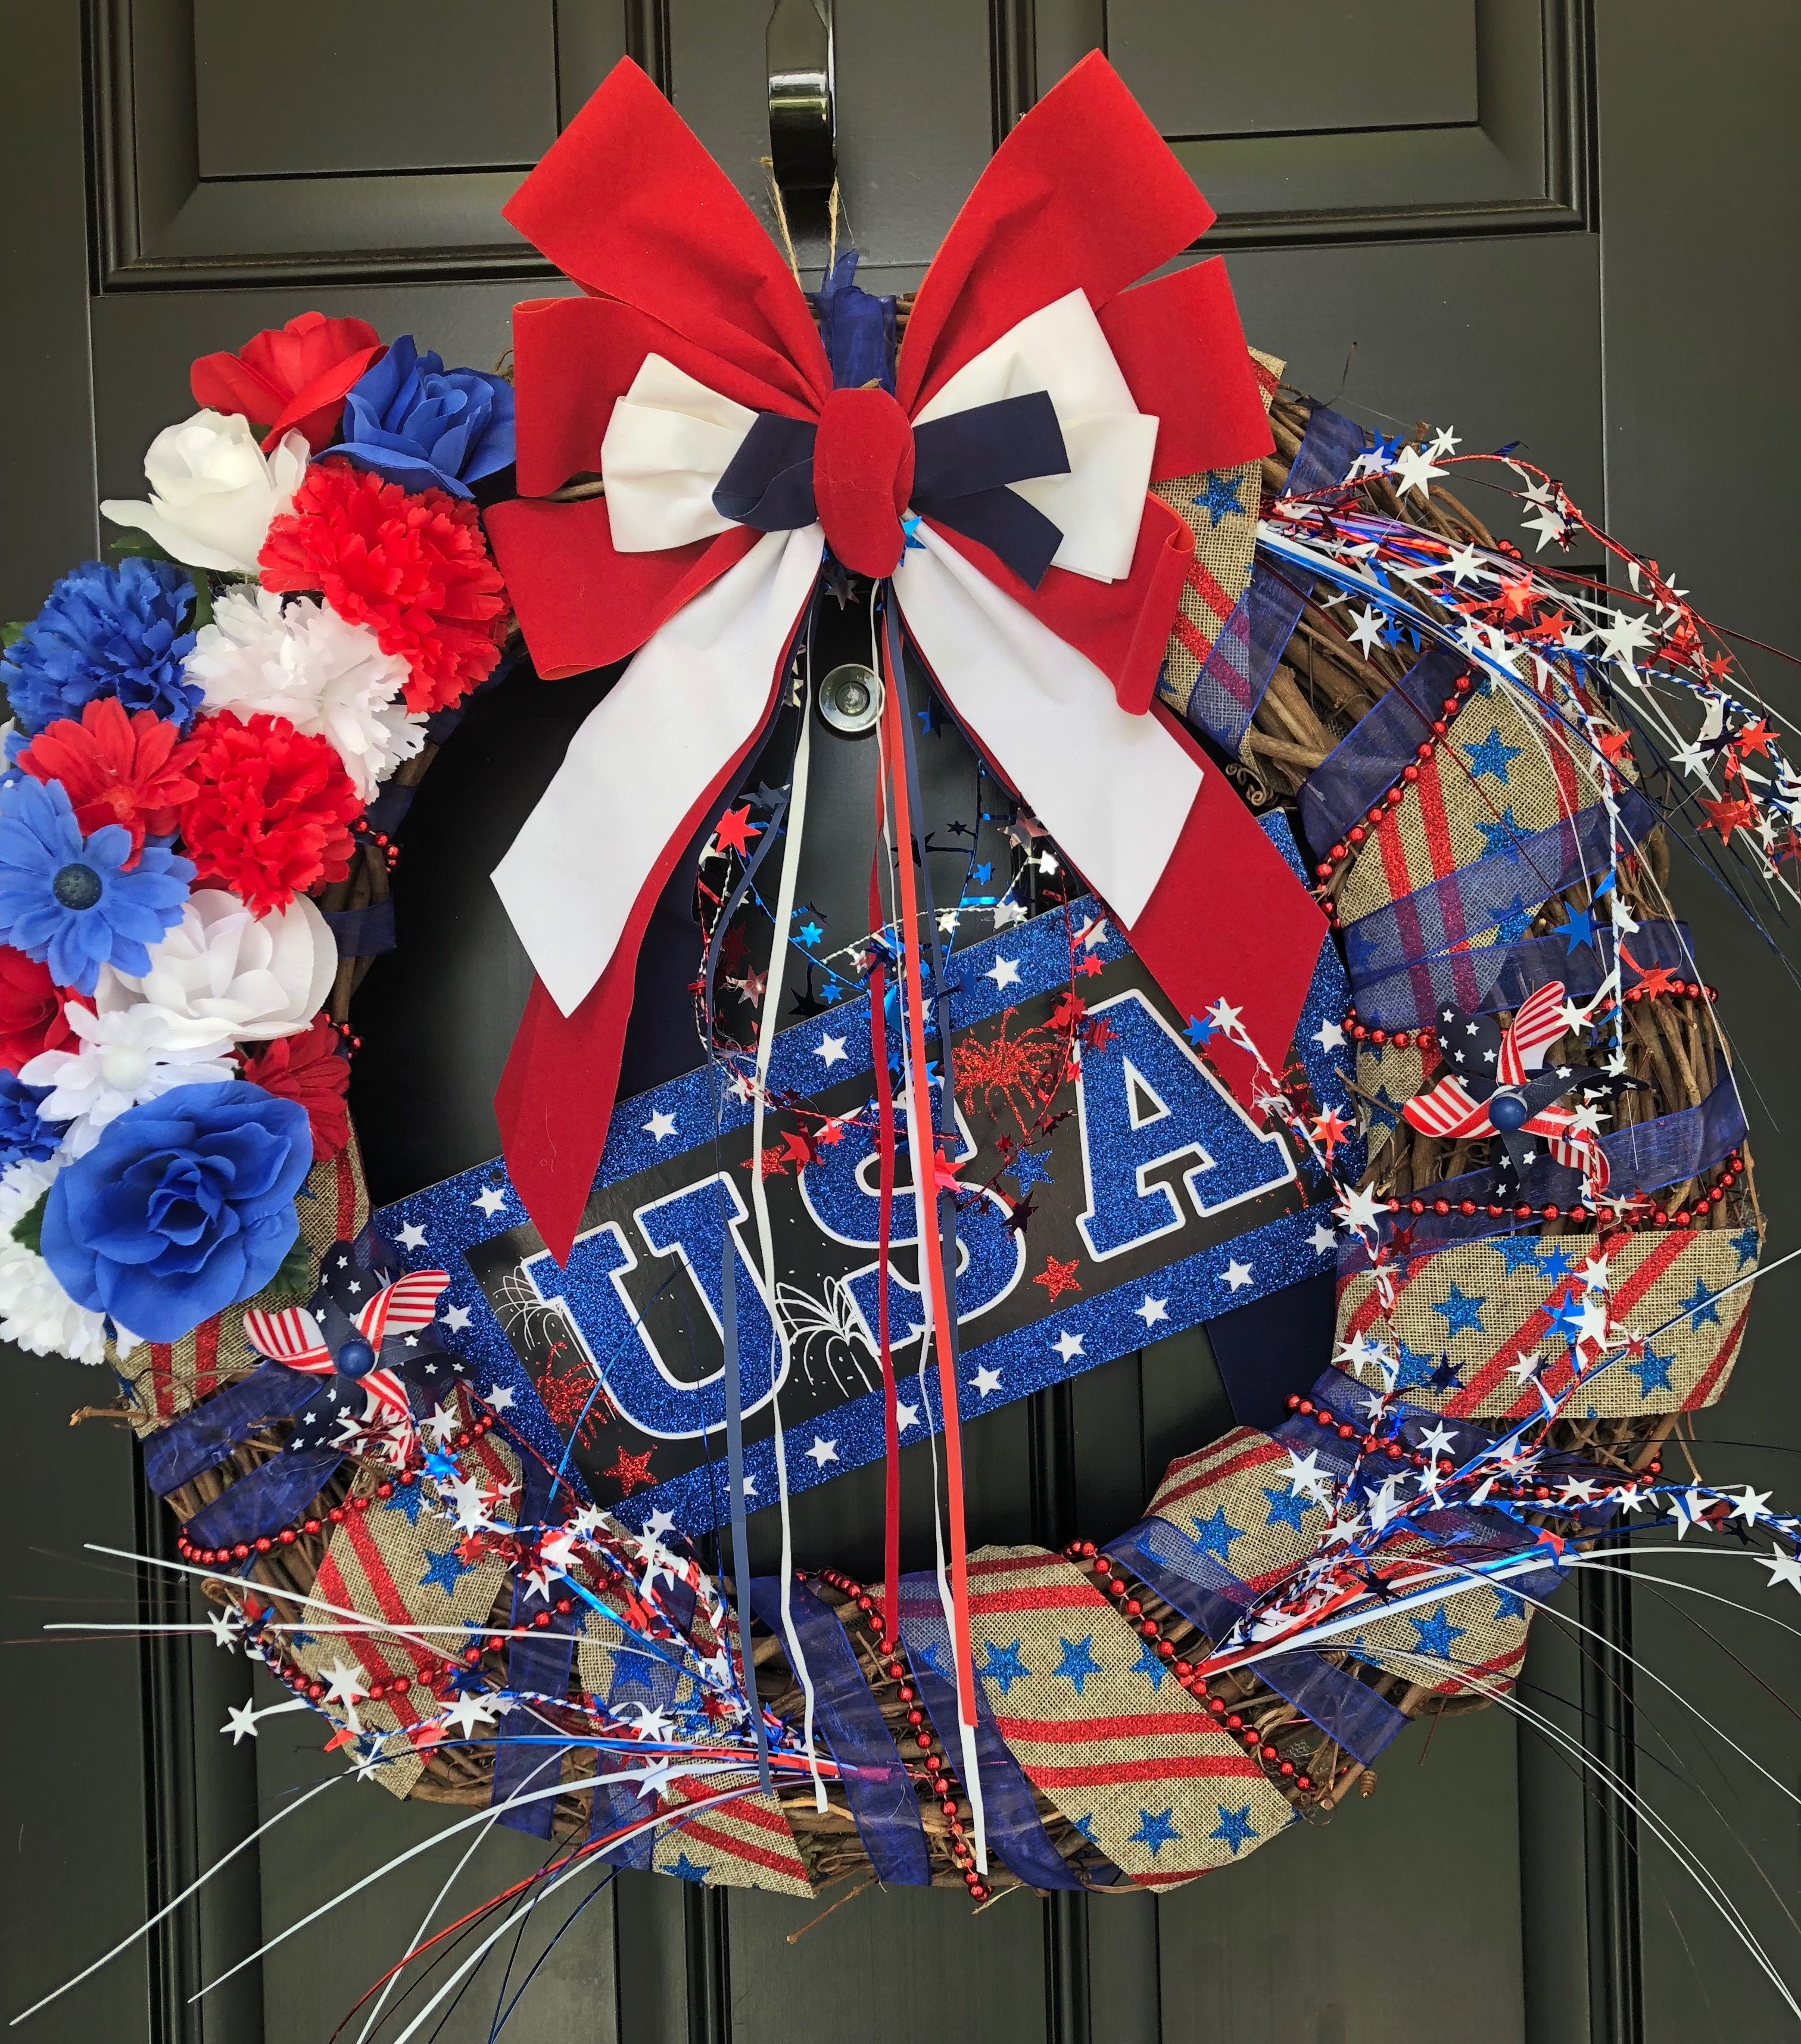 4Th Of July Wreath, Red White And Blue Wreath Made